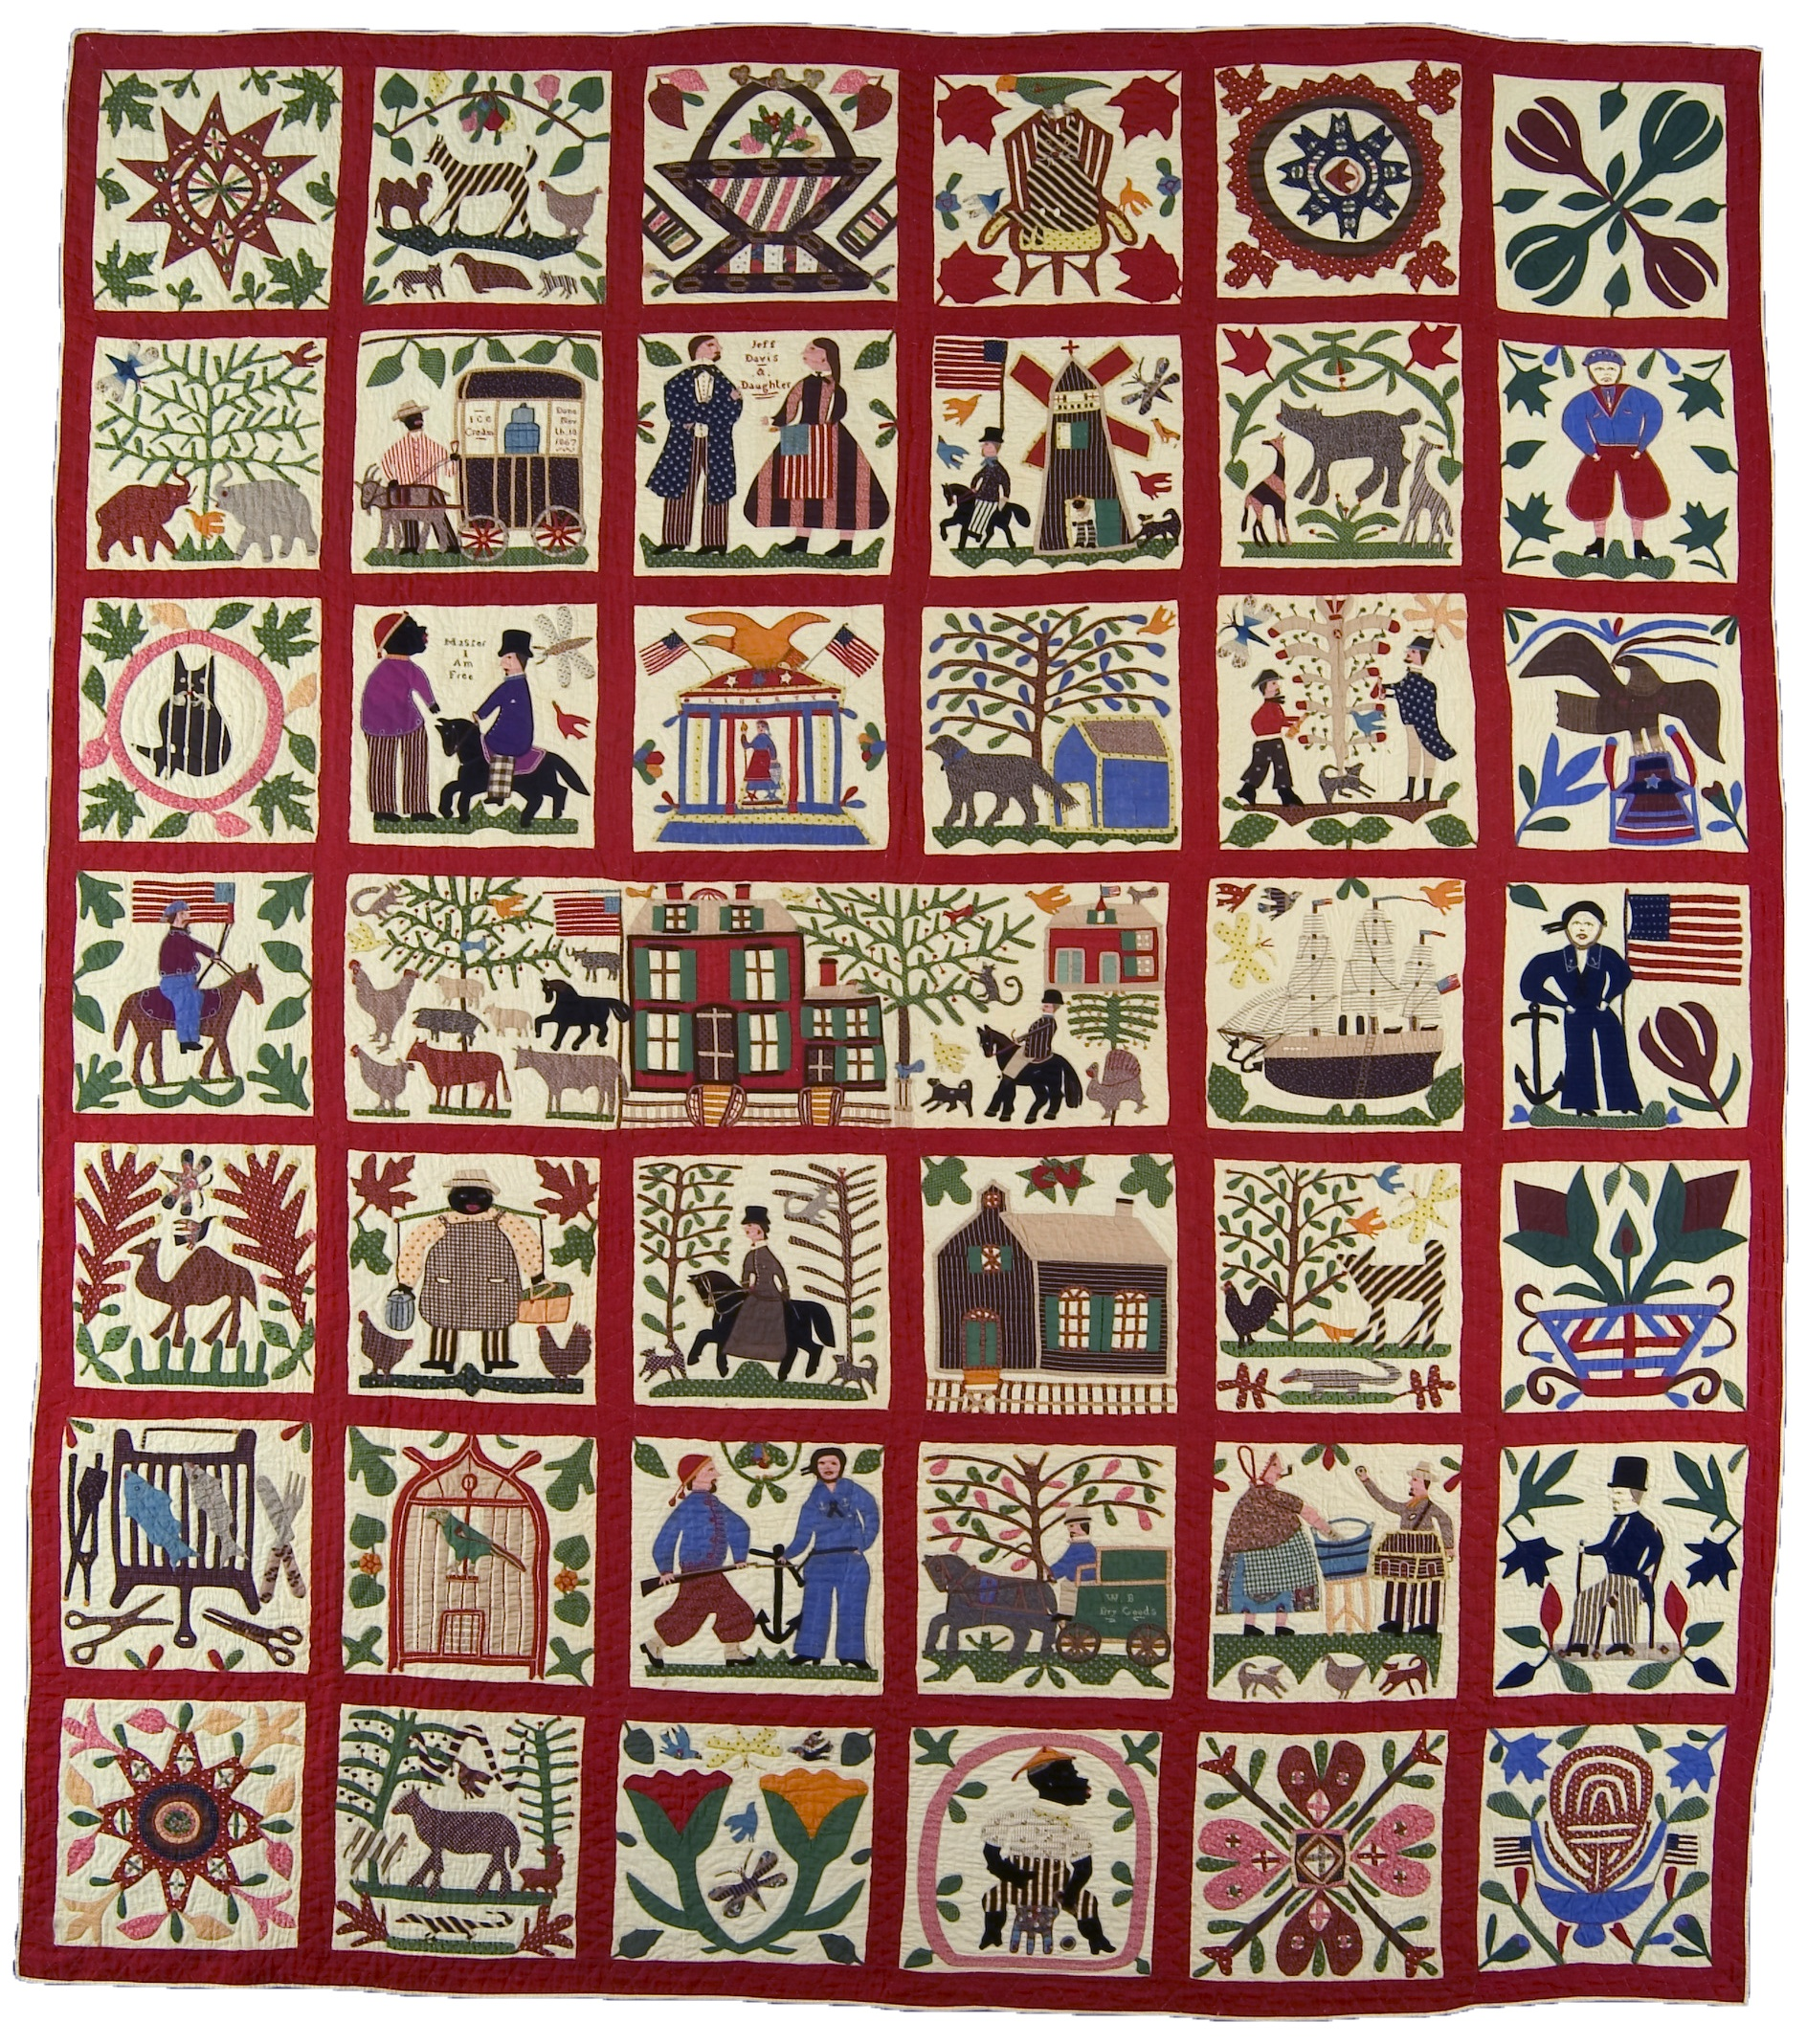 Reconciliation Quilt: Lucinda Ward Honstain's vision of the Civil ... : quilt image - Adamdwight.com